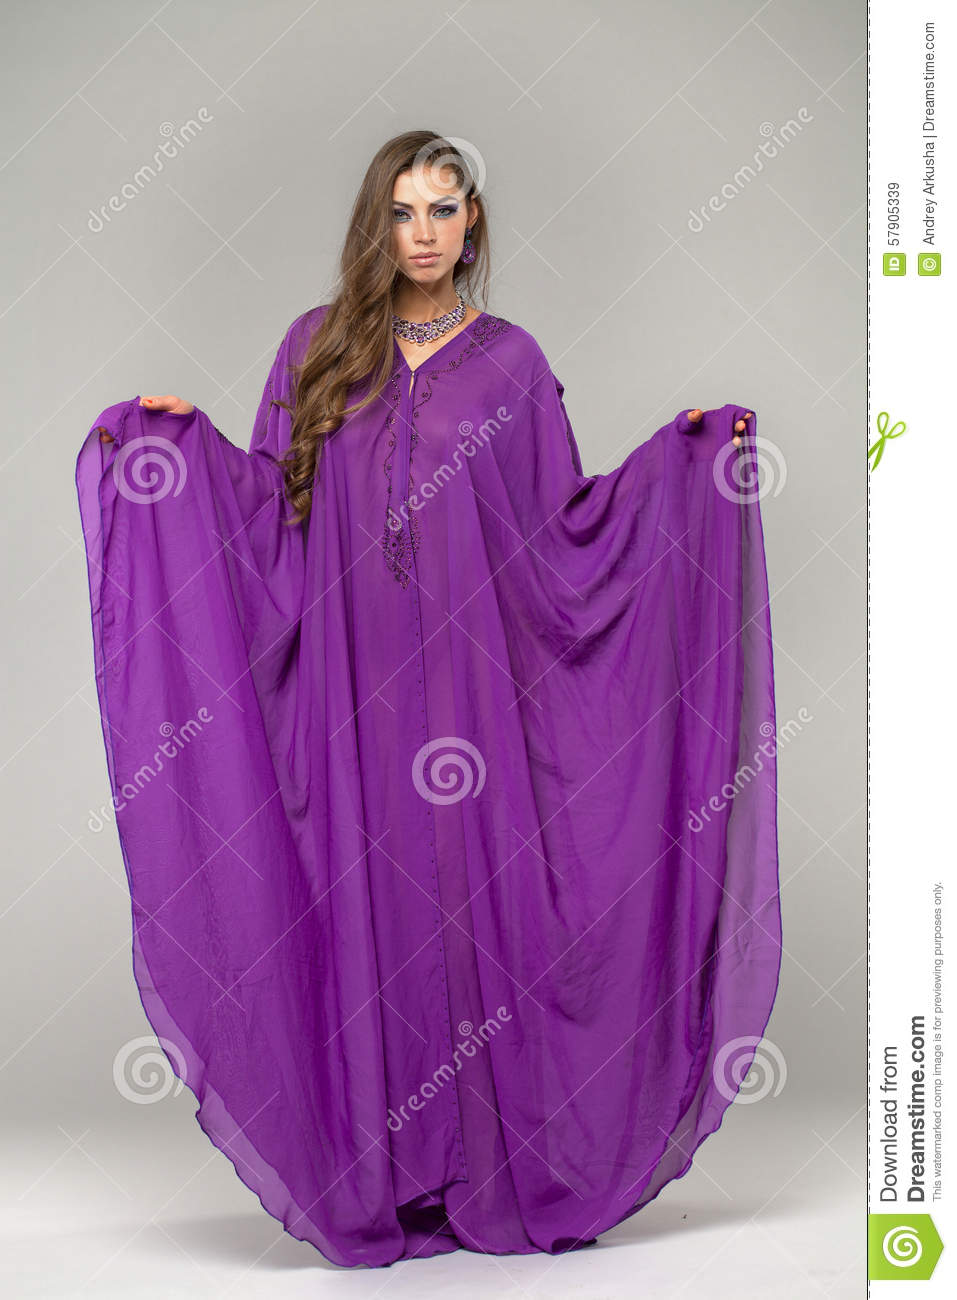 Portrait of the young woman in purple tunic Arabic